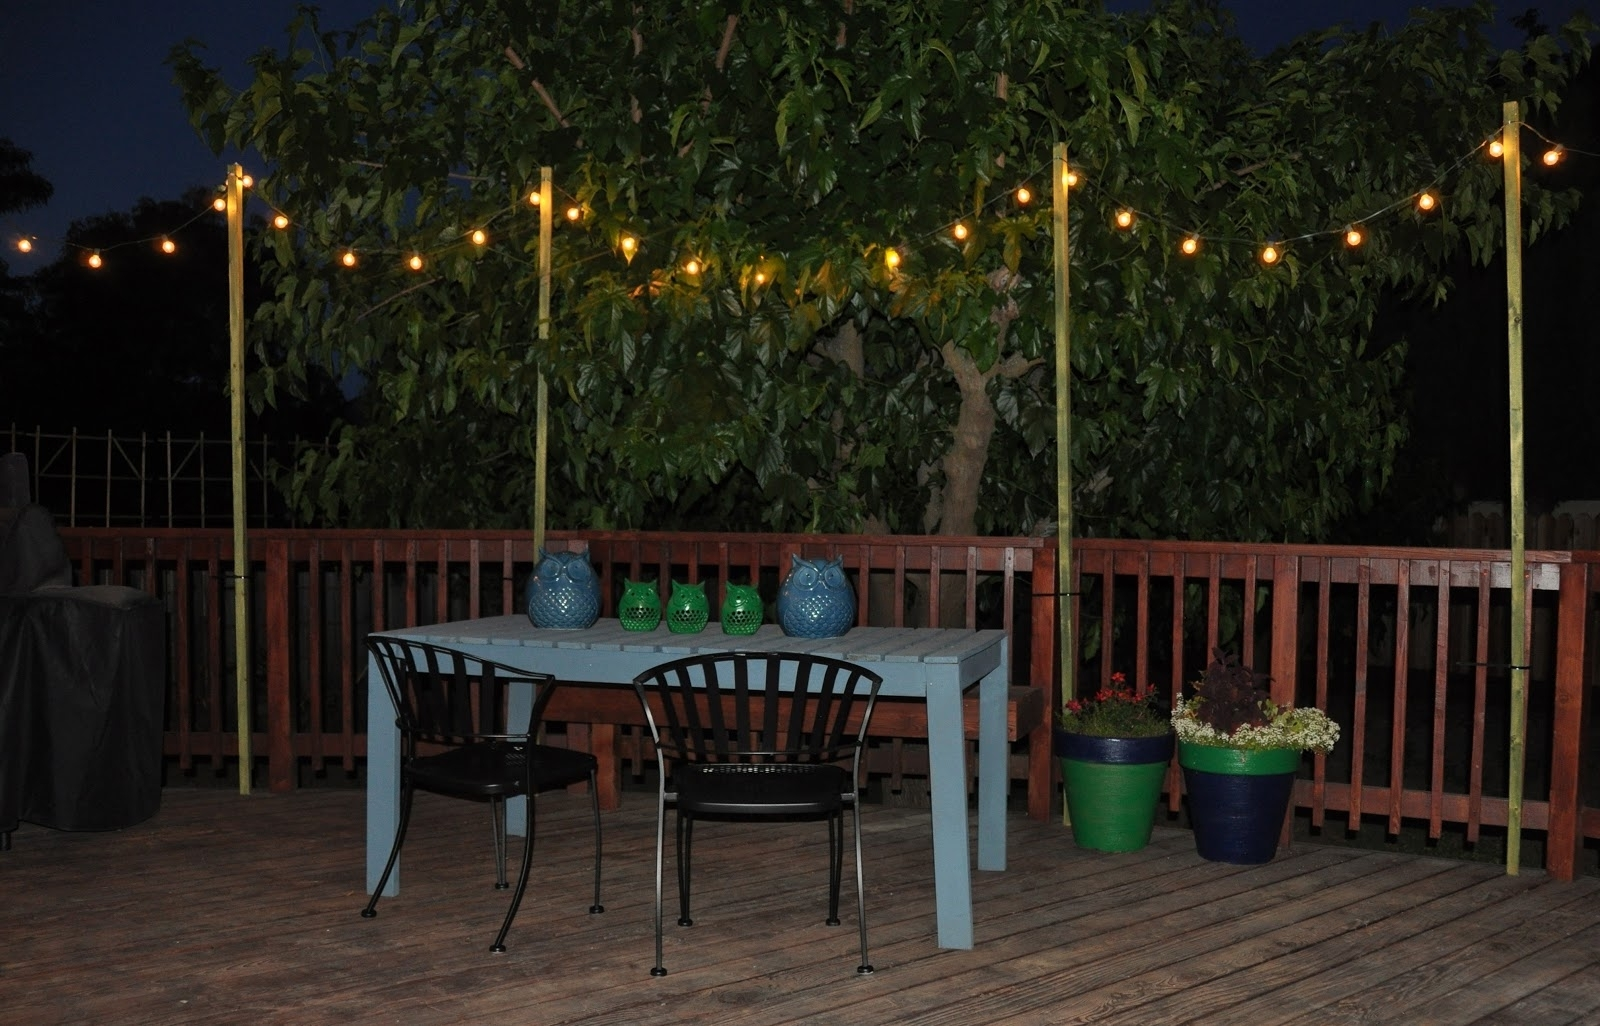 Famous How To Hang String Lights Outsidehanging Outdoor Patio Lights On Within Hanging Outdoor Lights For A Party (View 7 of 20)